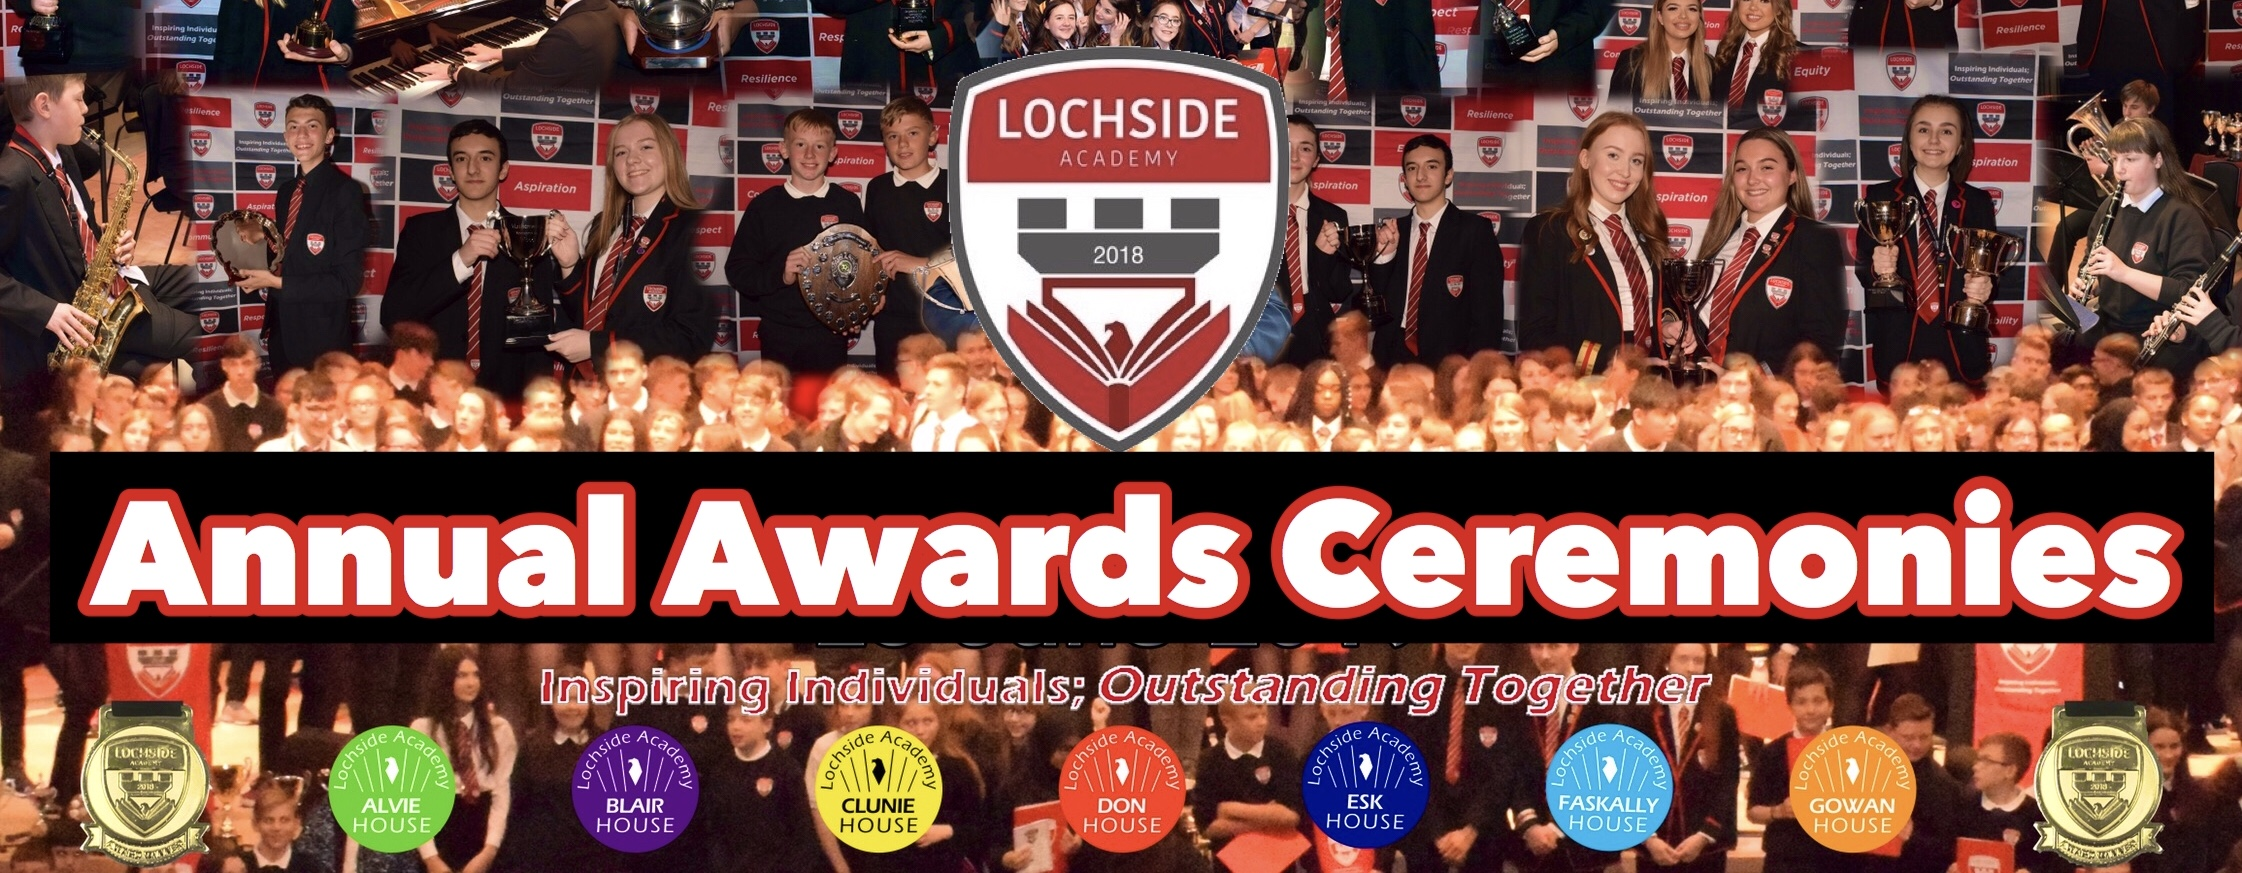 Lochside Academy Year in Pictures 2020